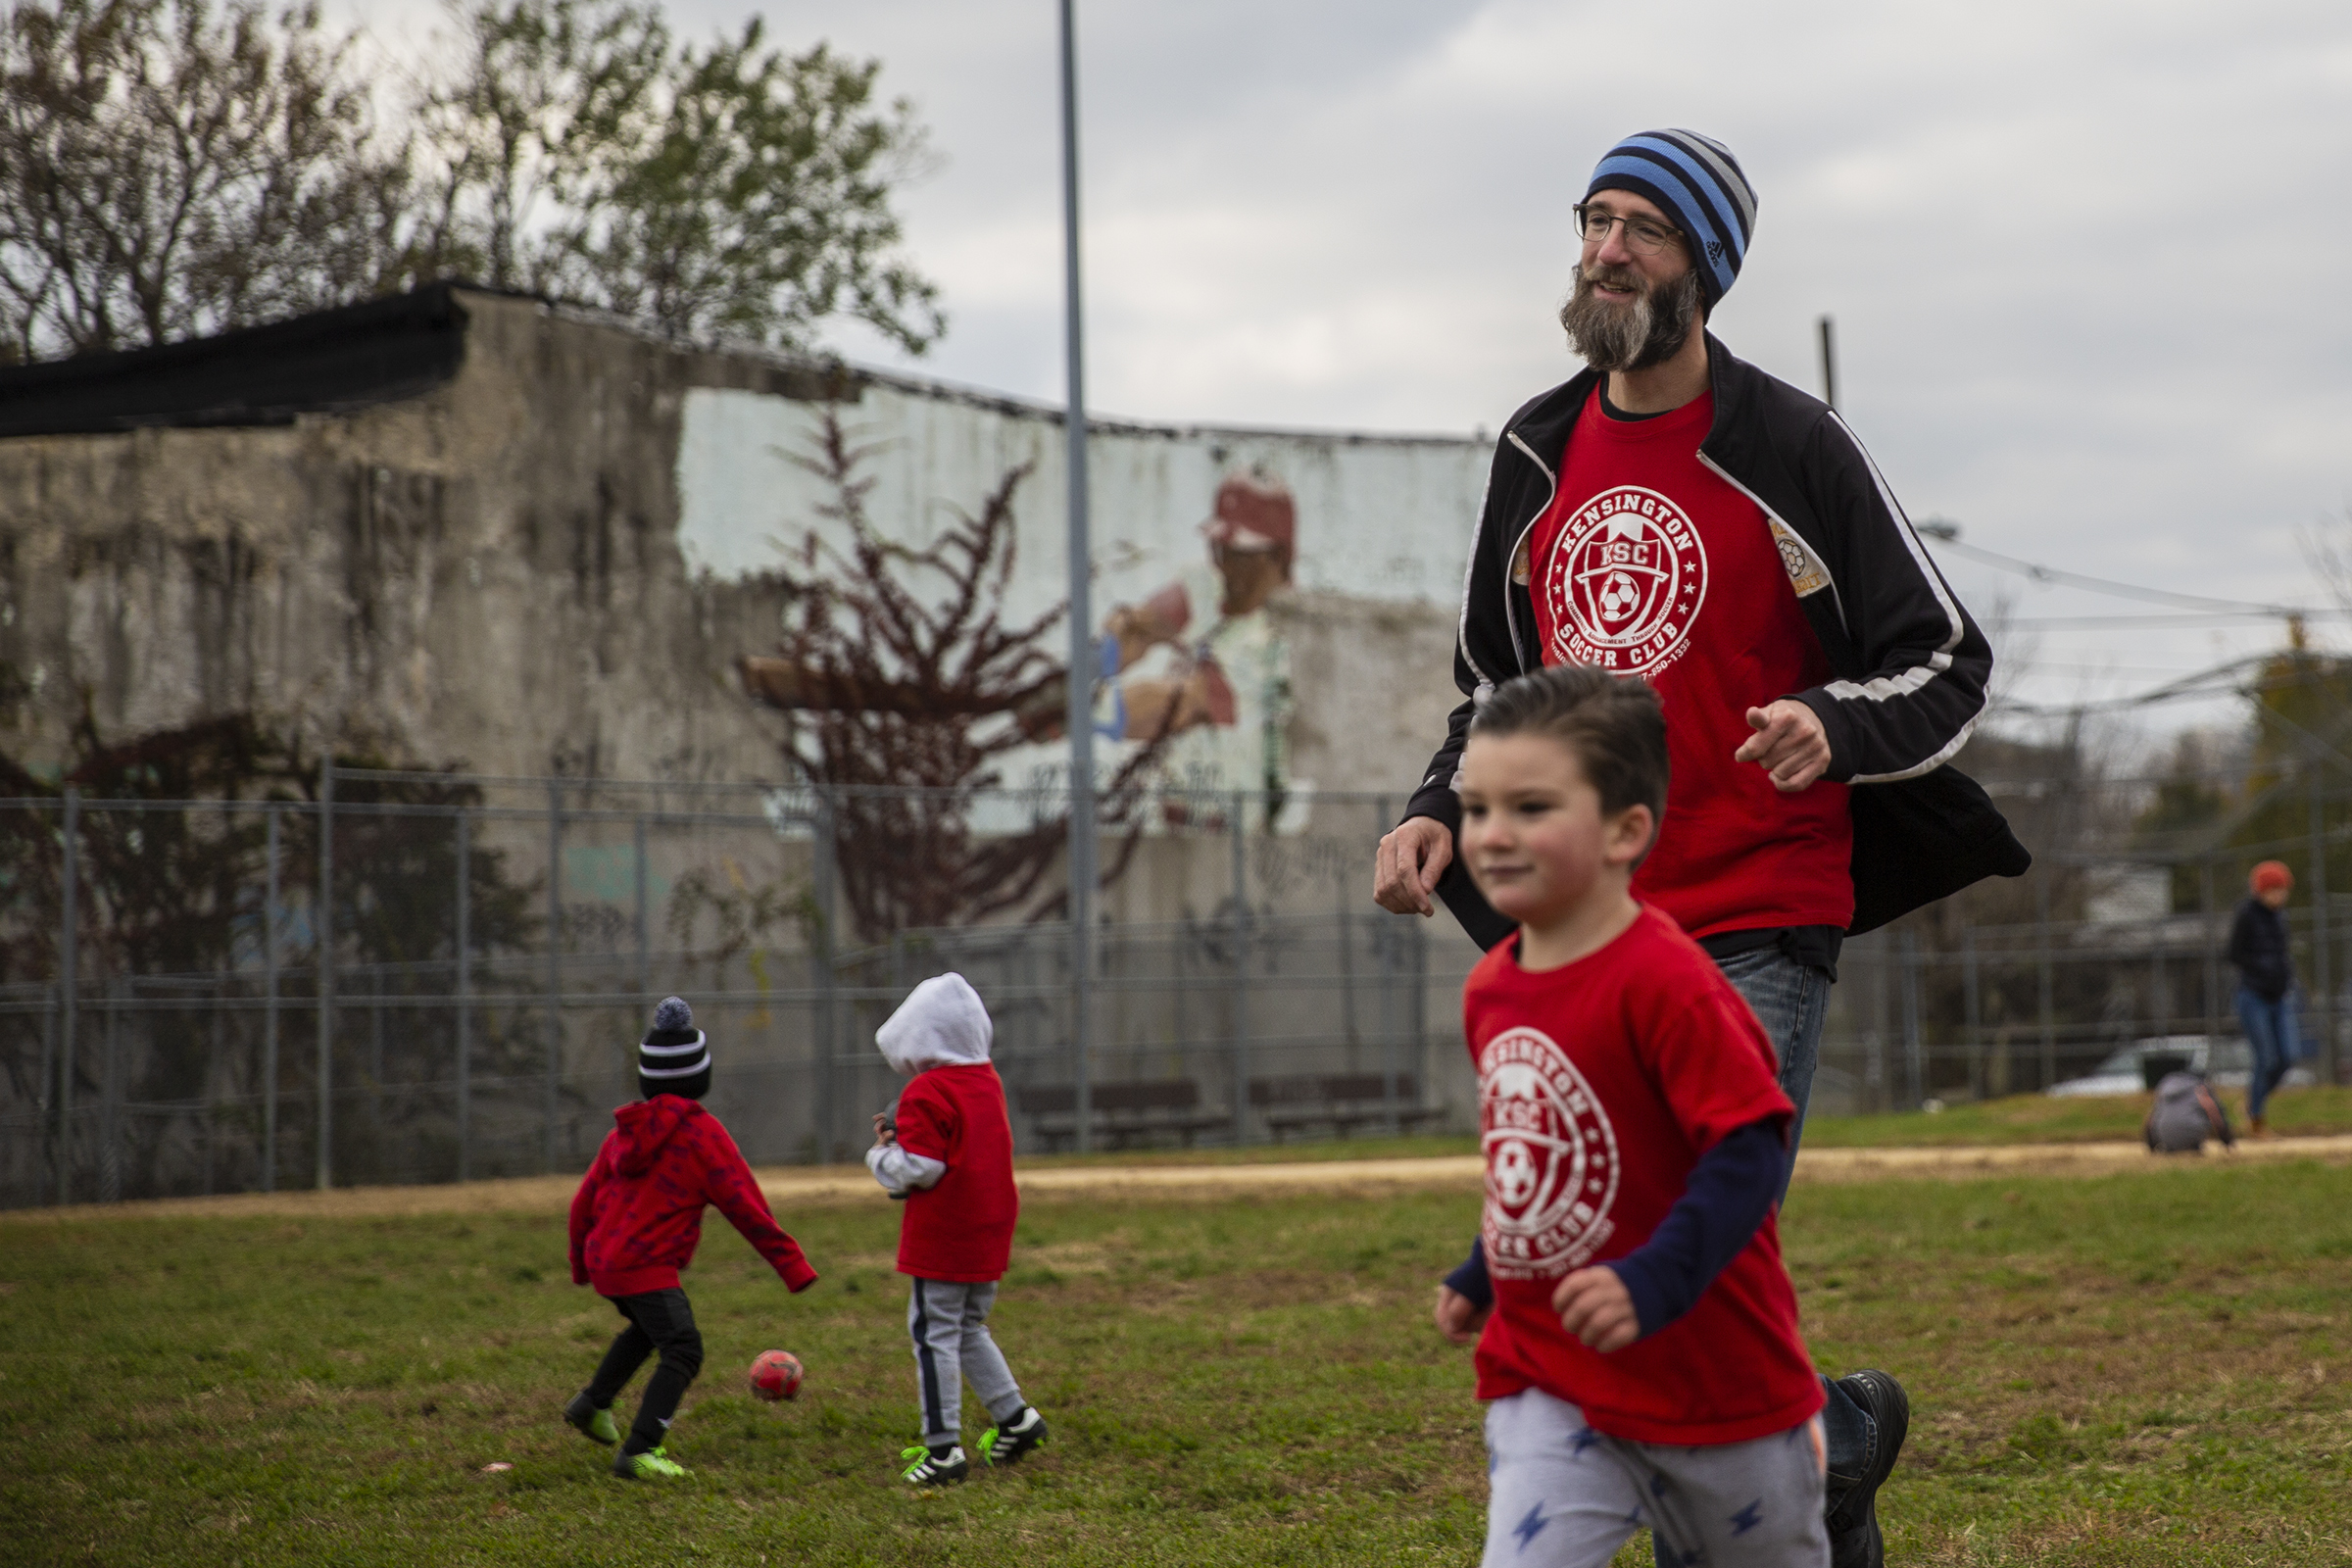 Jim Hardy, founder of the Kensington Soccer Club, plays with a group of children at the conclusion of their soccer practice at the club´s main field at 3rd and Dauphin.